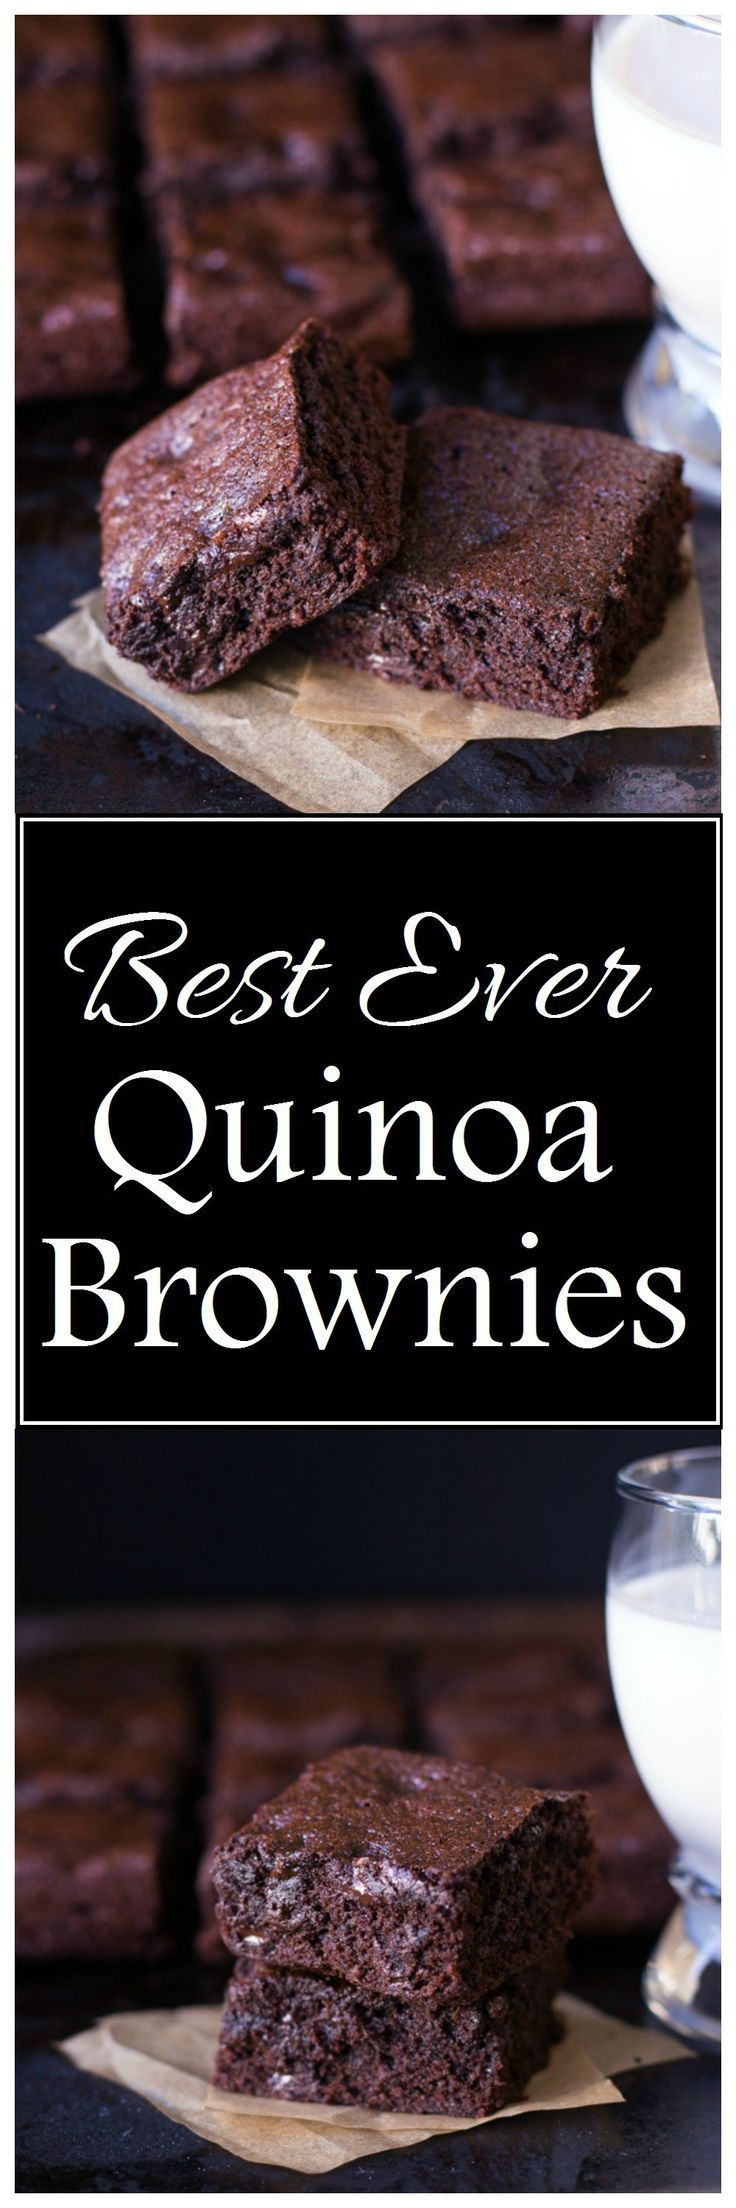 These Best-Ever Quinoa Brownies are chewy, fudgy, and utterly decadent. They're naturally gluten-free, made without any starches or gums.